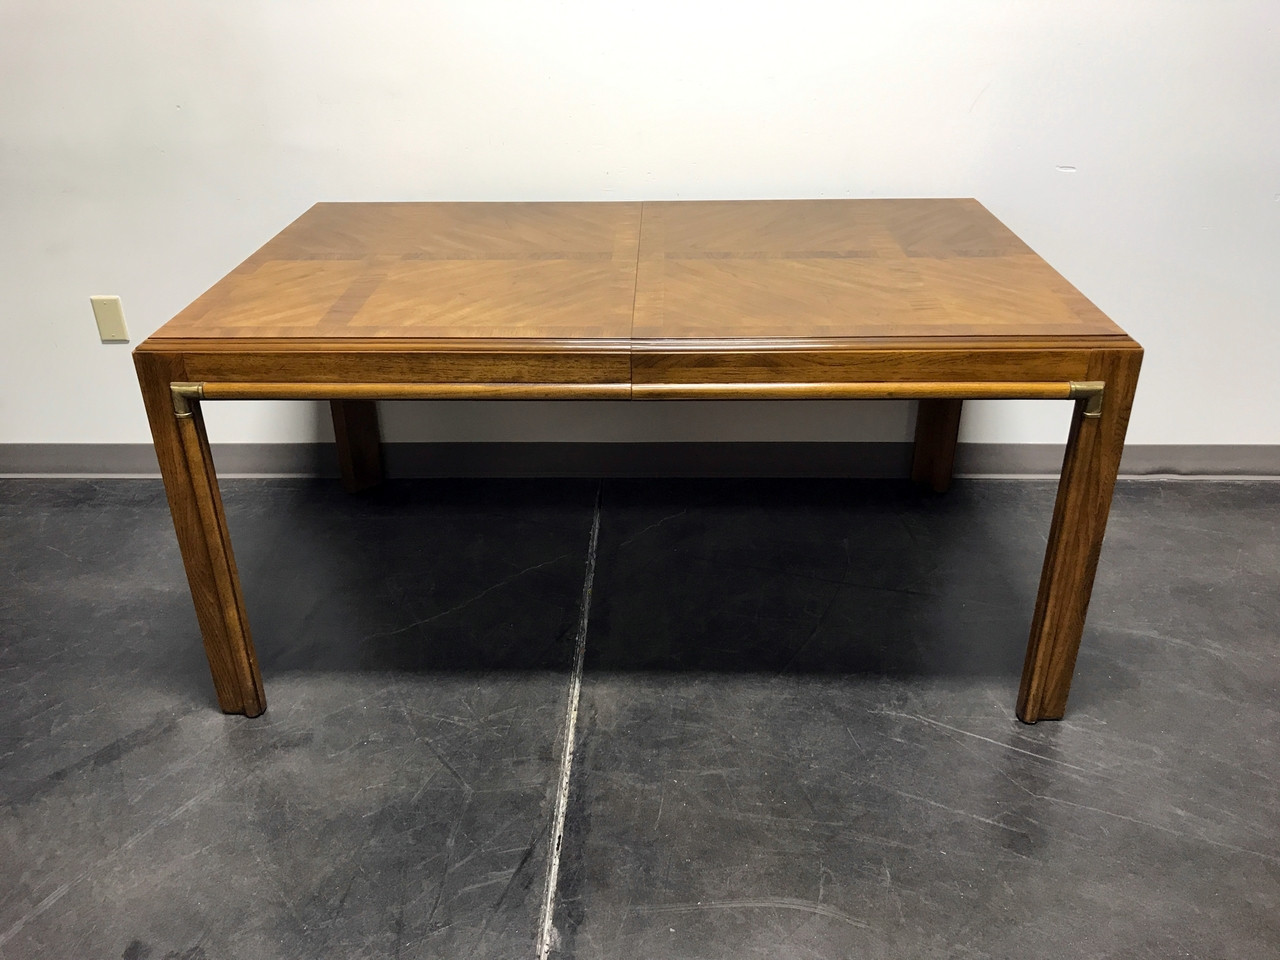 Sold out drexel heritage accolade campaign style dining table sold out drexel heritage accolade campaign style dining table geotapseo Image collections